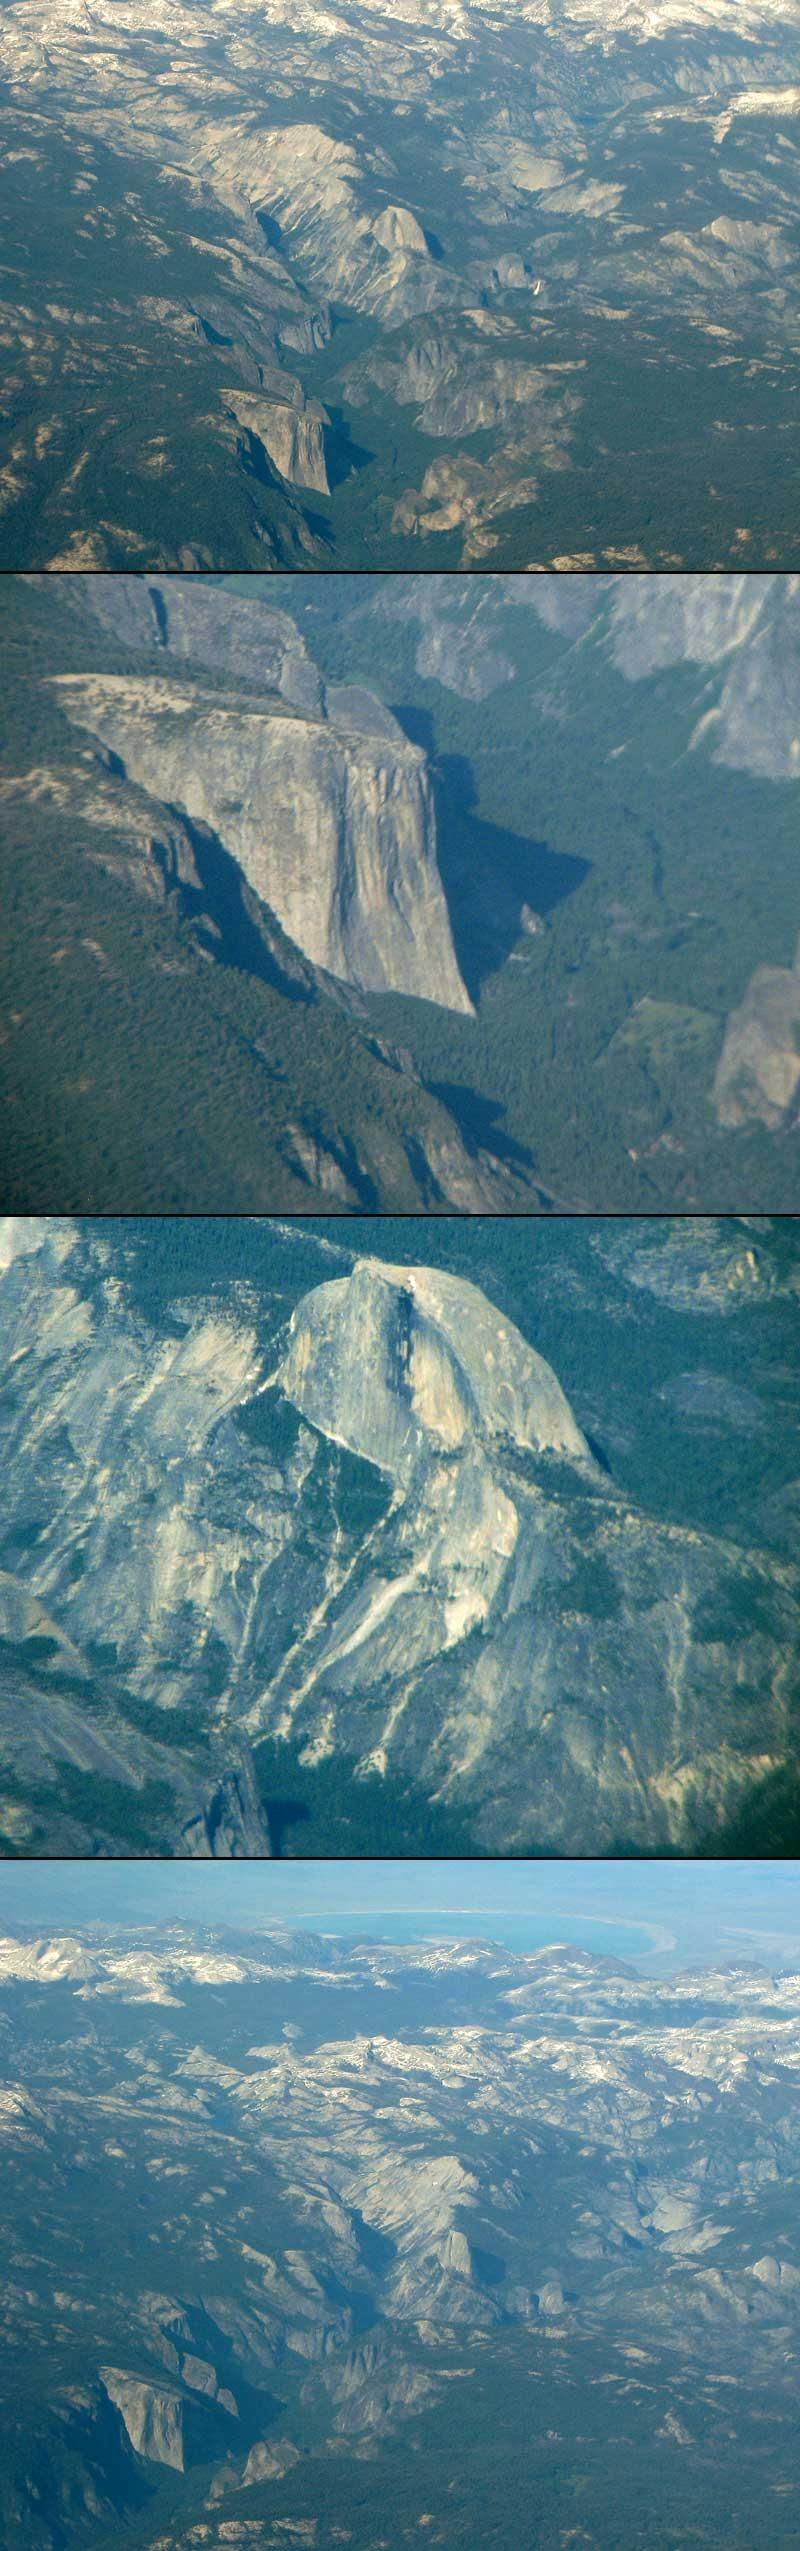 Yosemite Valley and Mono Lake by nelsone